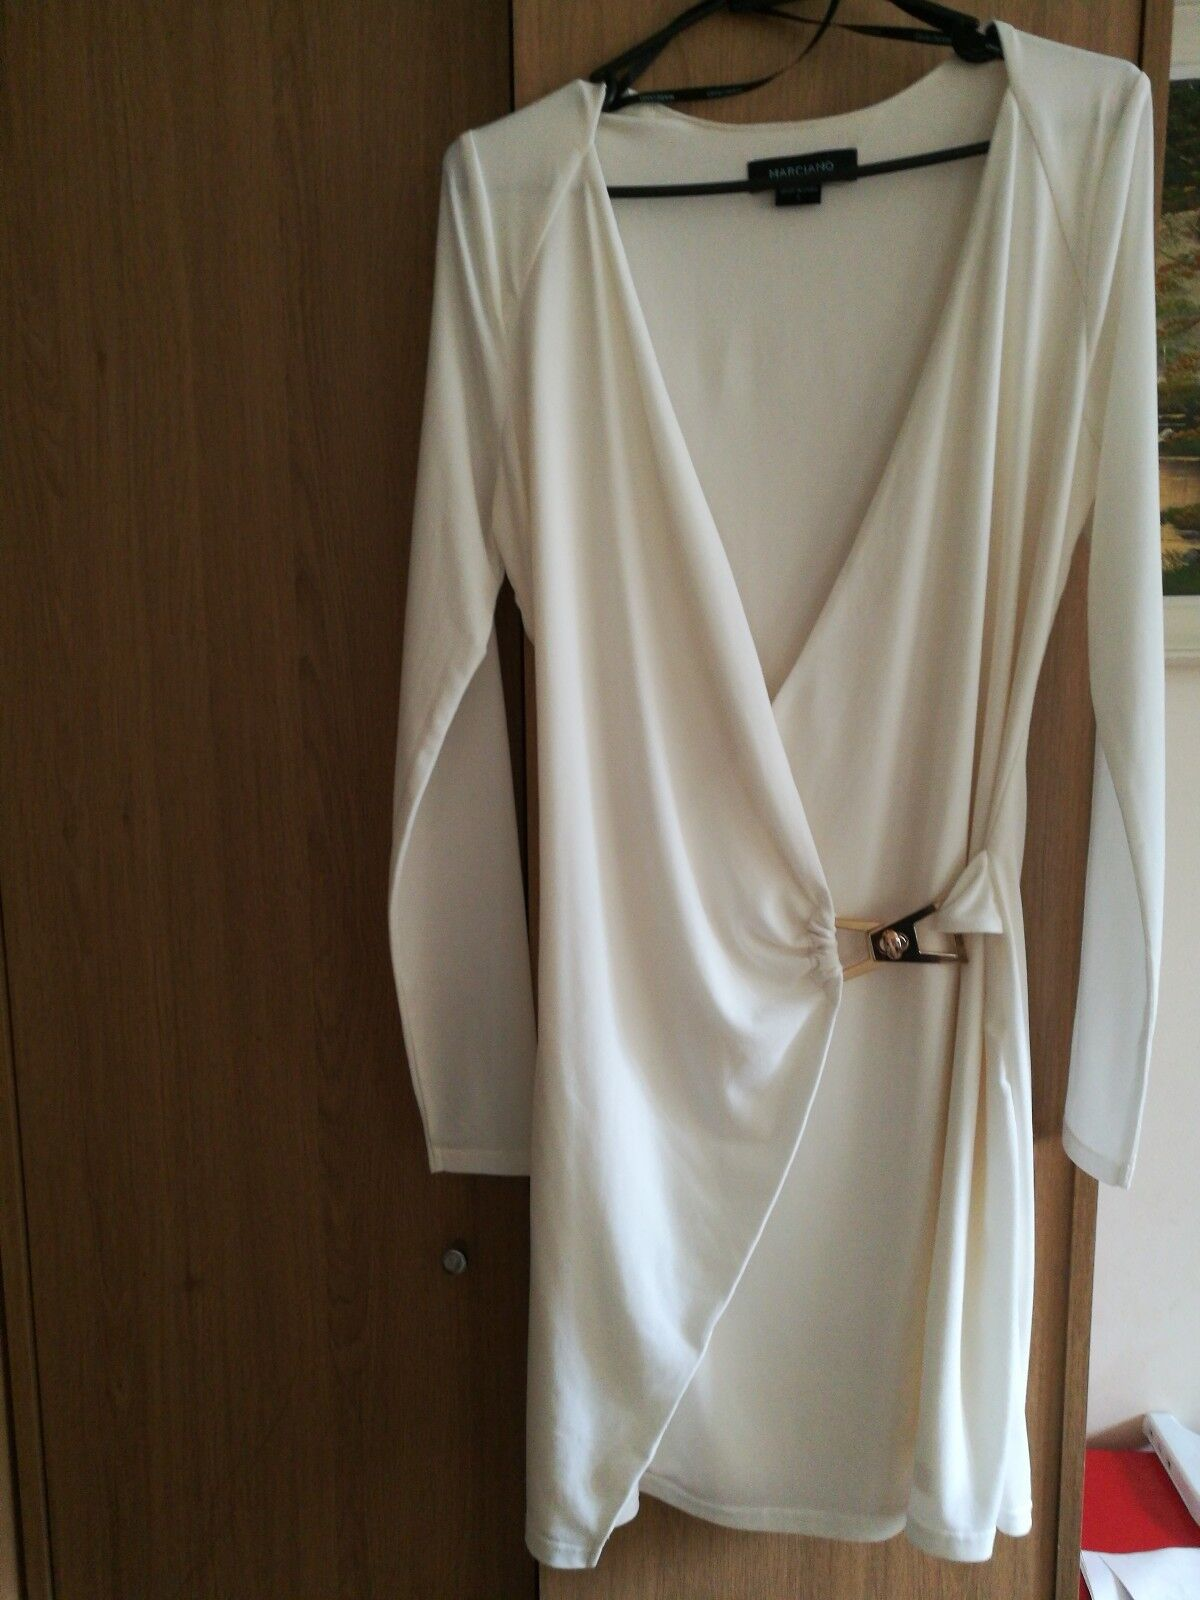 Marciano Guess Lettie White Wrap Dress Size S Long sleeve